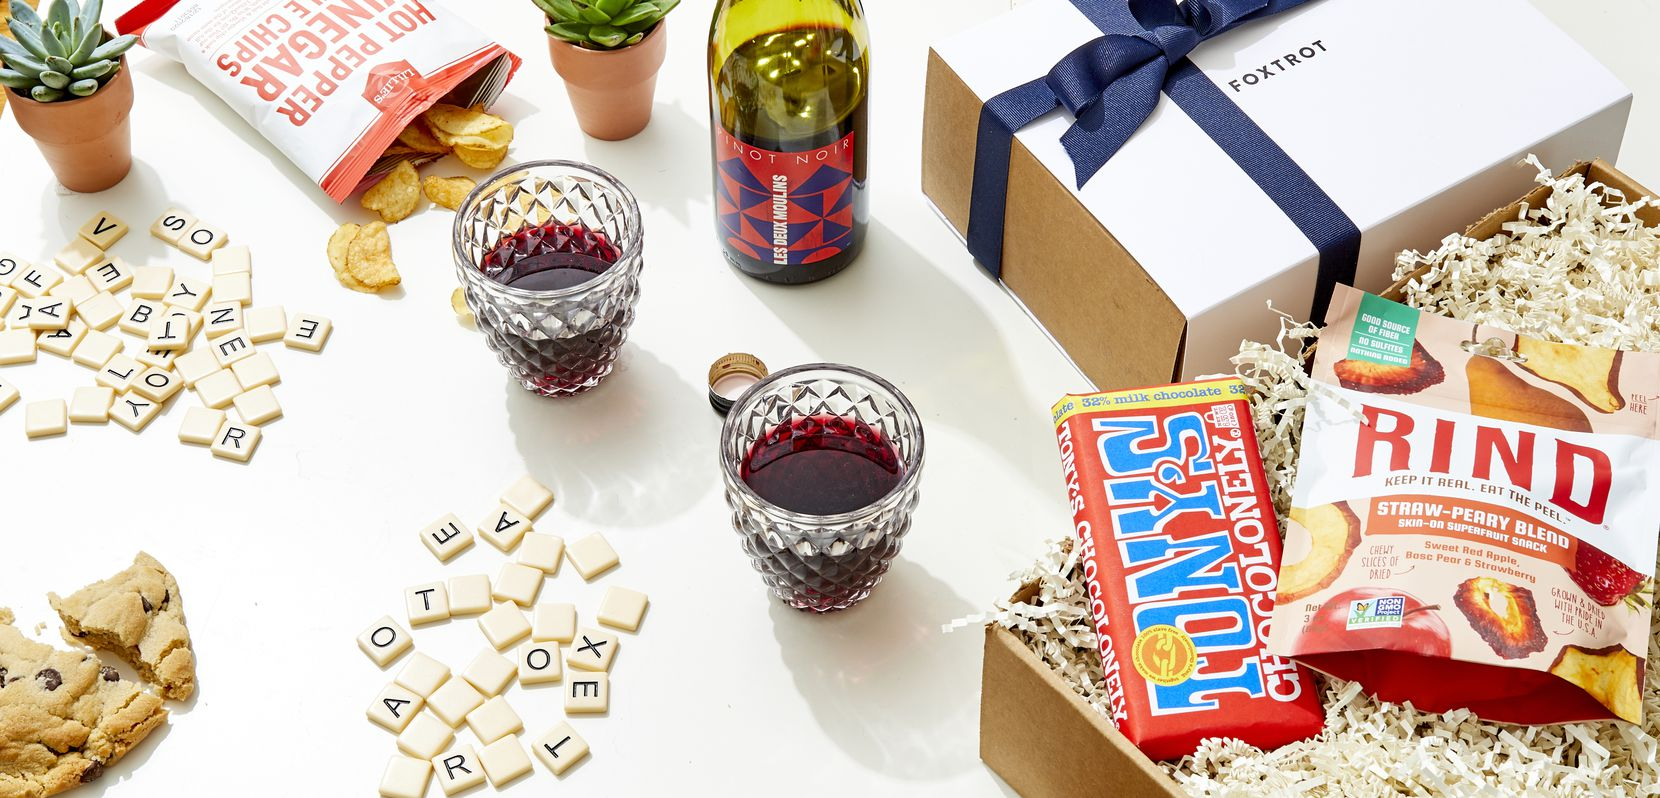 Foxtrot Market is offering the Father's Day Foodie Kit for $30.